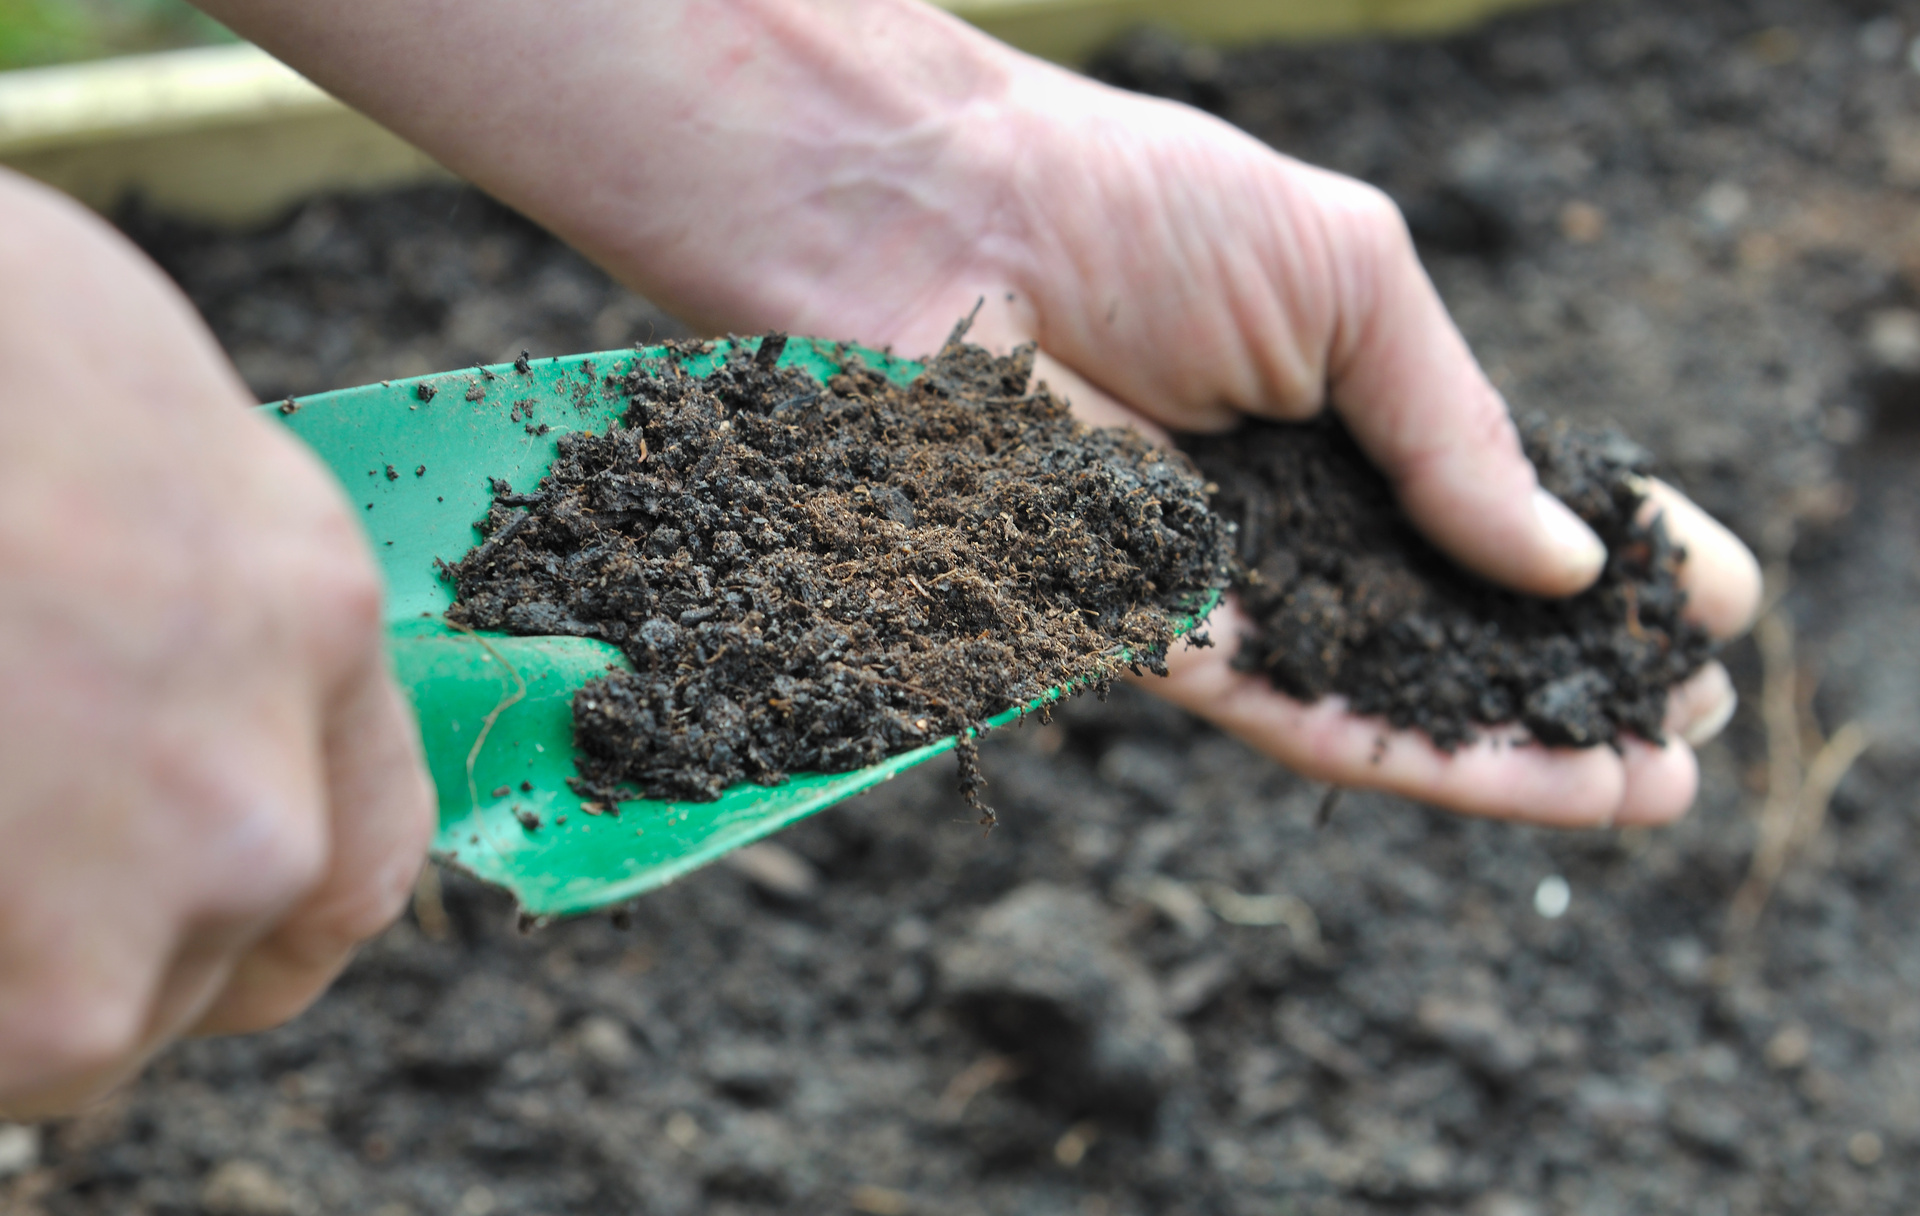 Compost tragedy: Widow wants death to serve as warning to gardeners